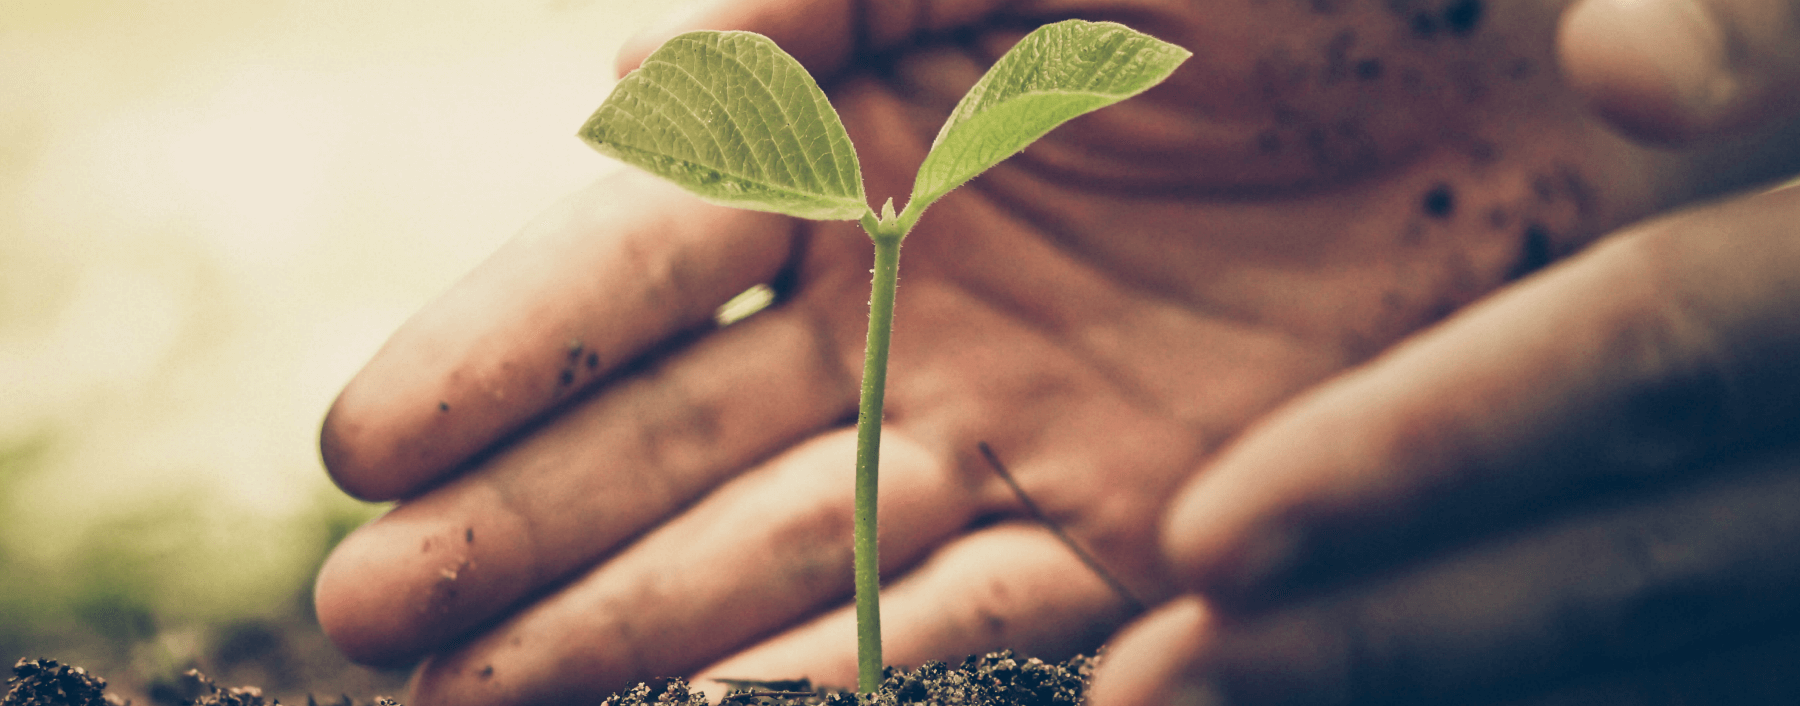 person planting a sapling in soil